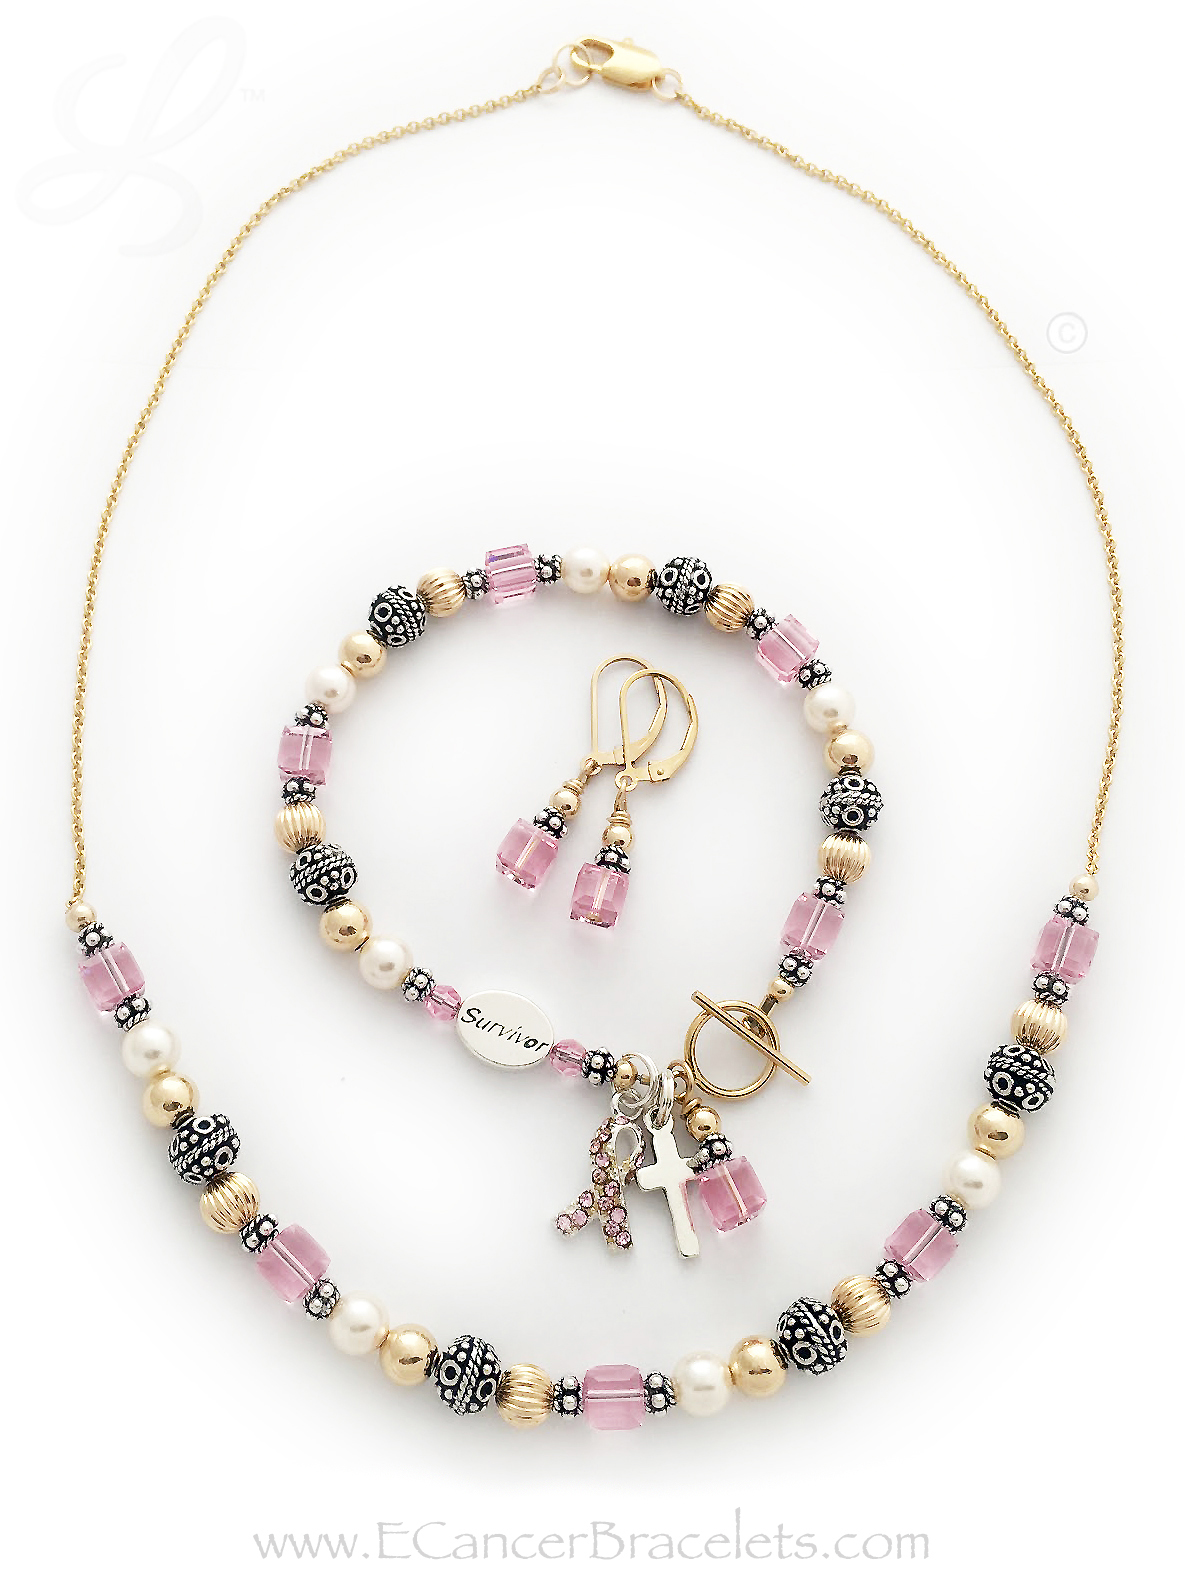 CBB-R26 - Survivor Bracelet, Necklace and Earrings shown. Bracelet: They added a SURVIVOR bead, Simple Cross Charm, Pink Crystal Ribbon and 14k gold-filled smooth toggle clasp